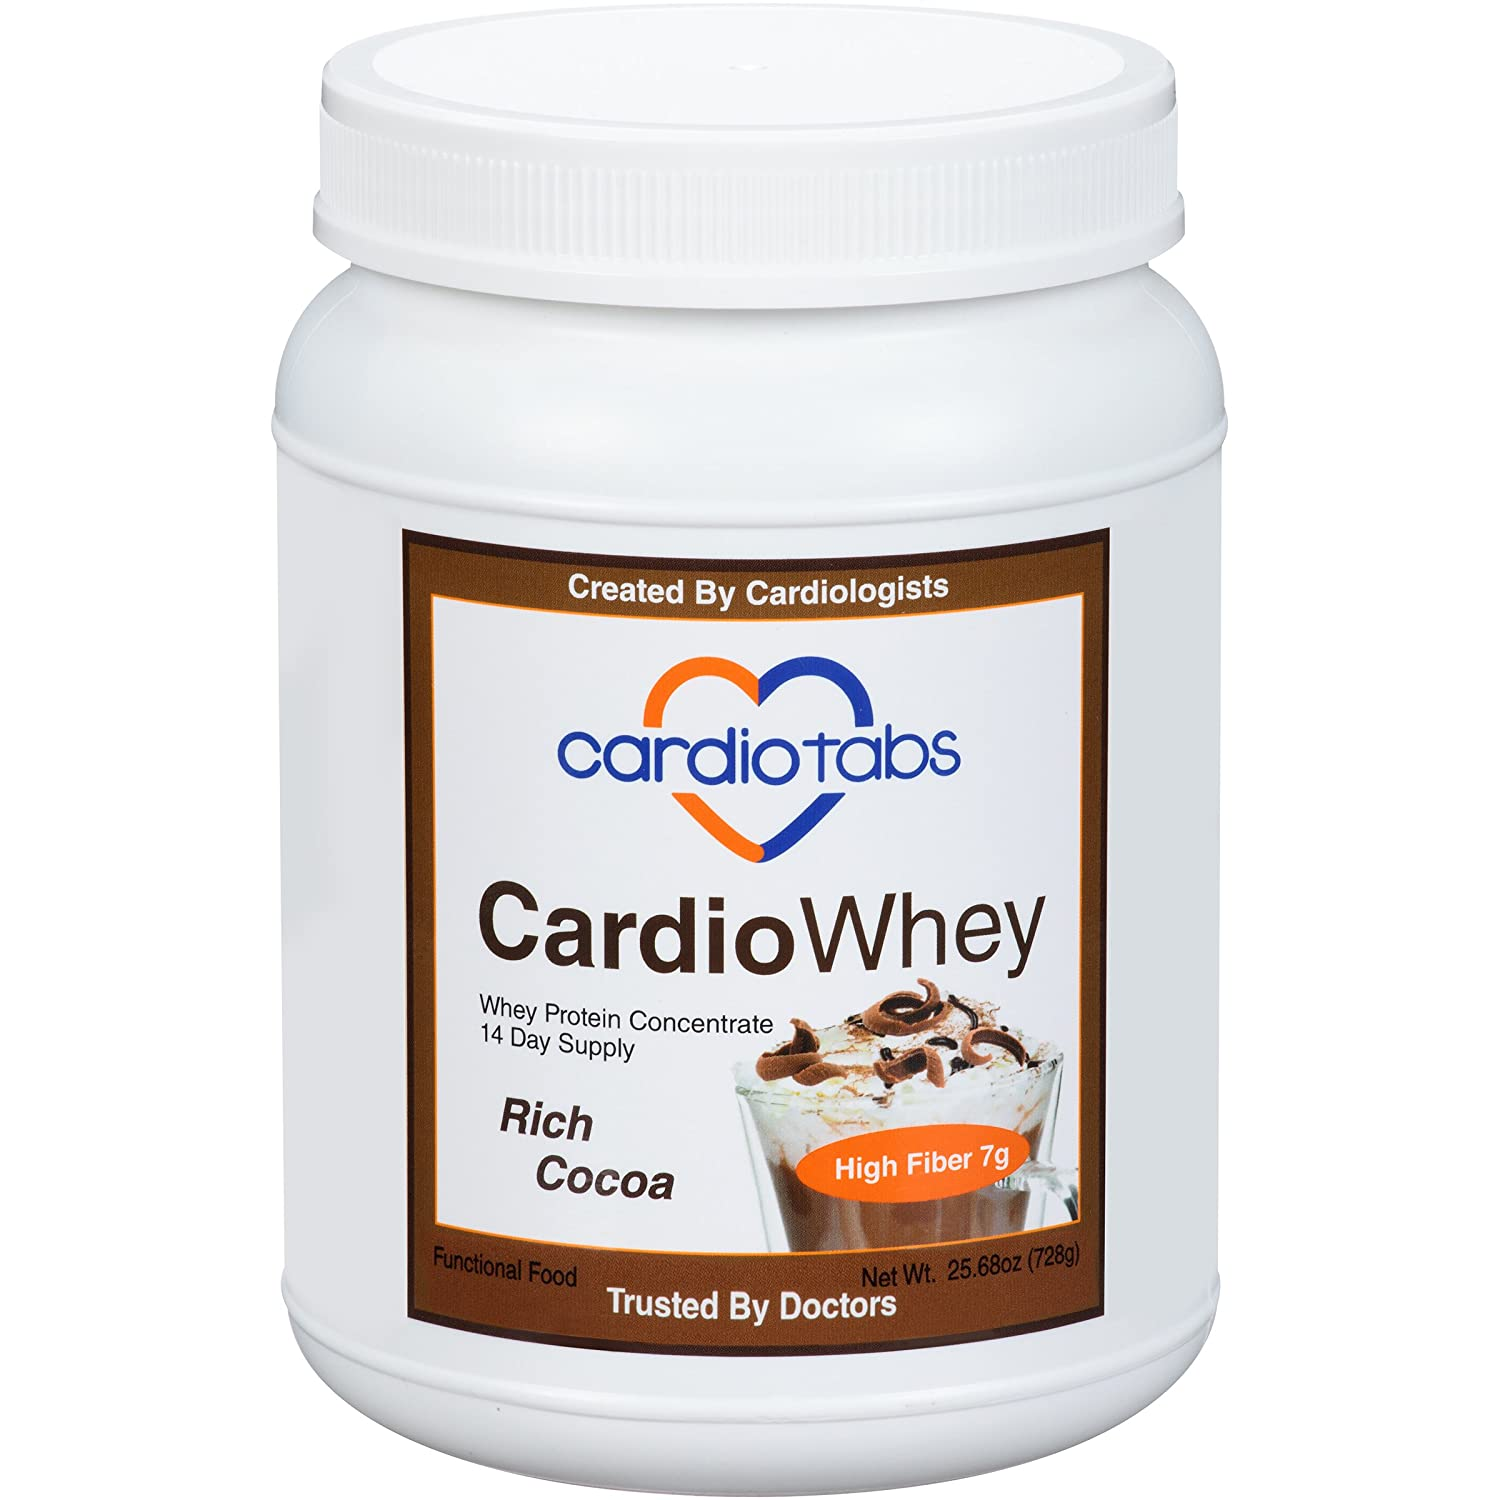 CardioWhey Rich Cocoa, Concentrate, 21 Grams of Protein and 7 Grams of Fiber per Serving